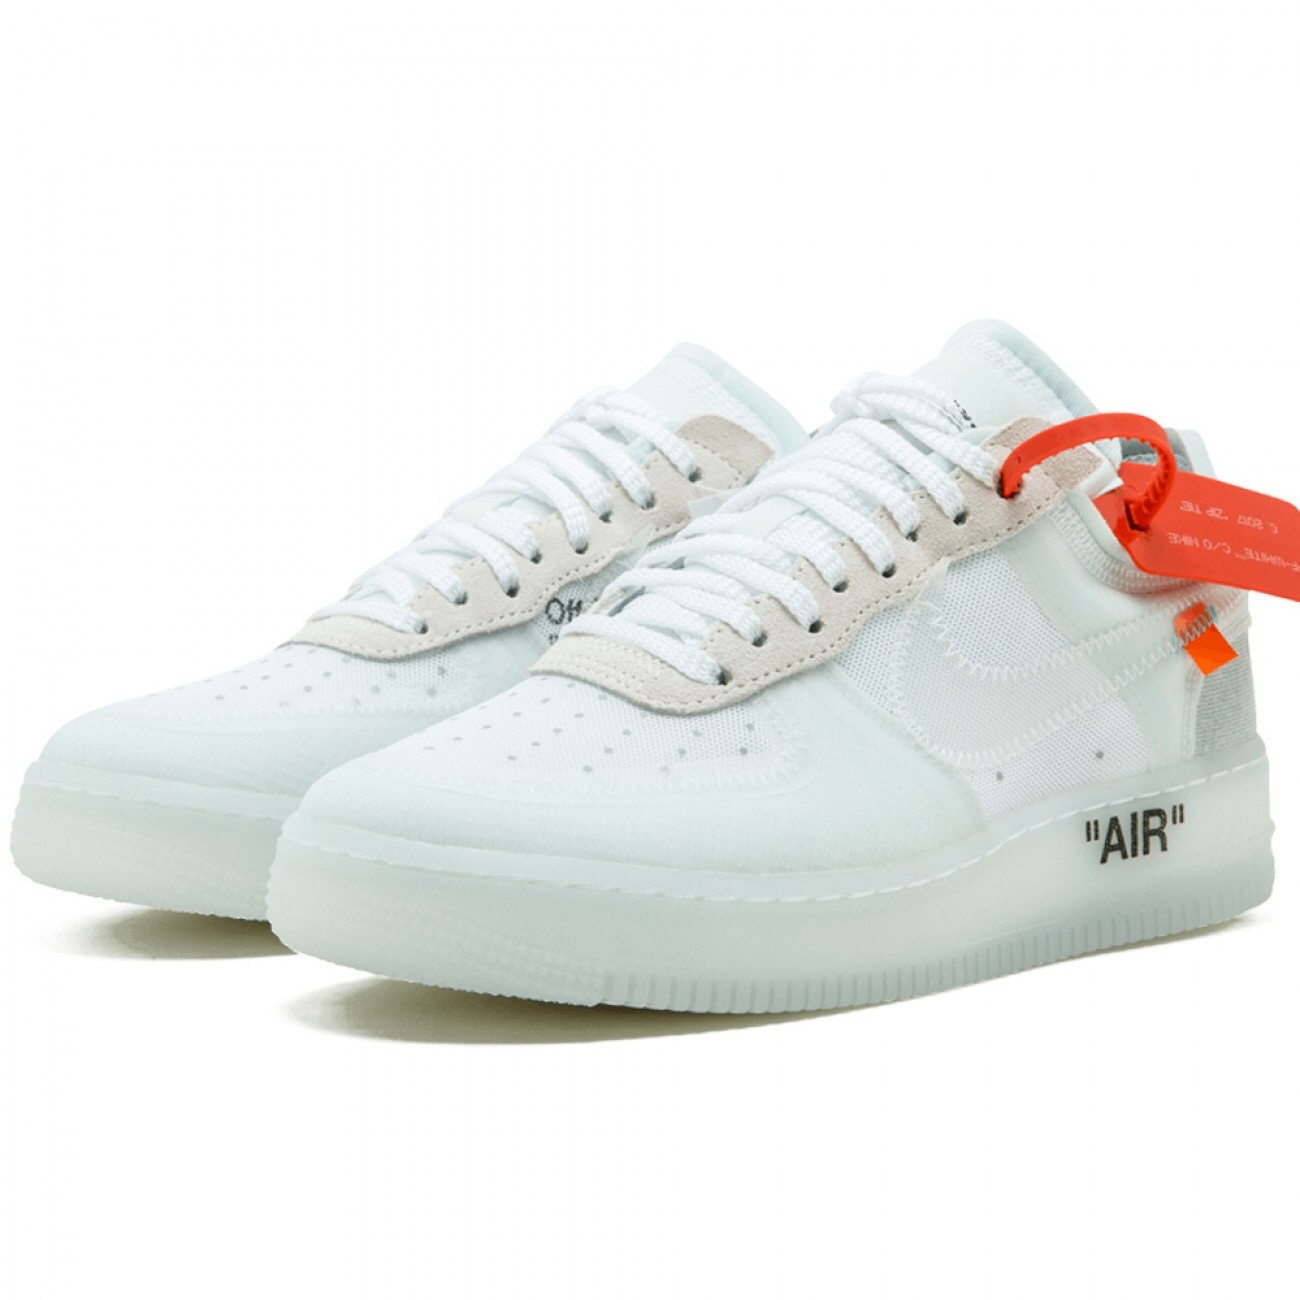 brand new e5d79 177d4 Air force 1 Nike x off white ...